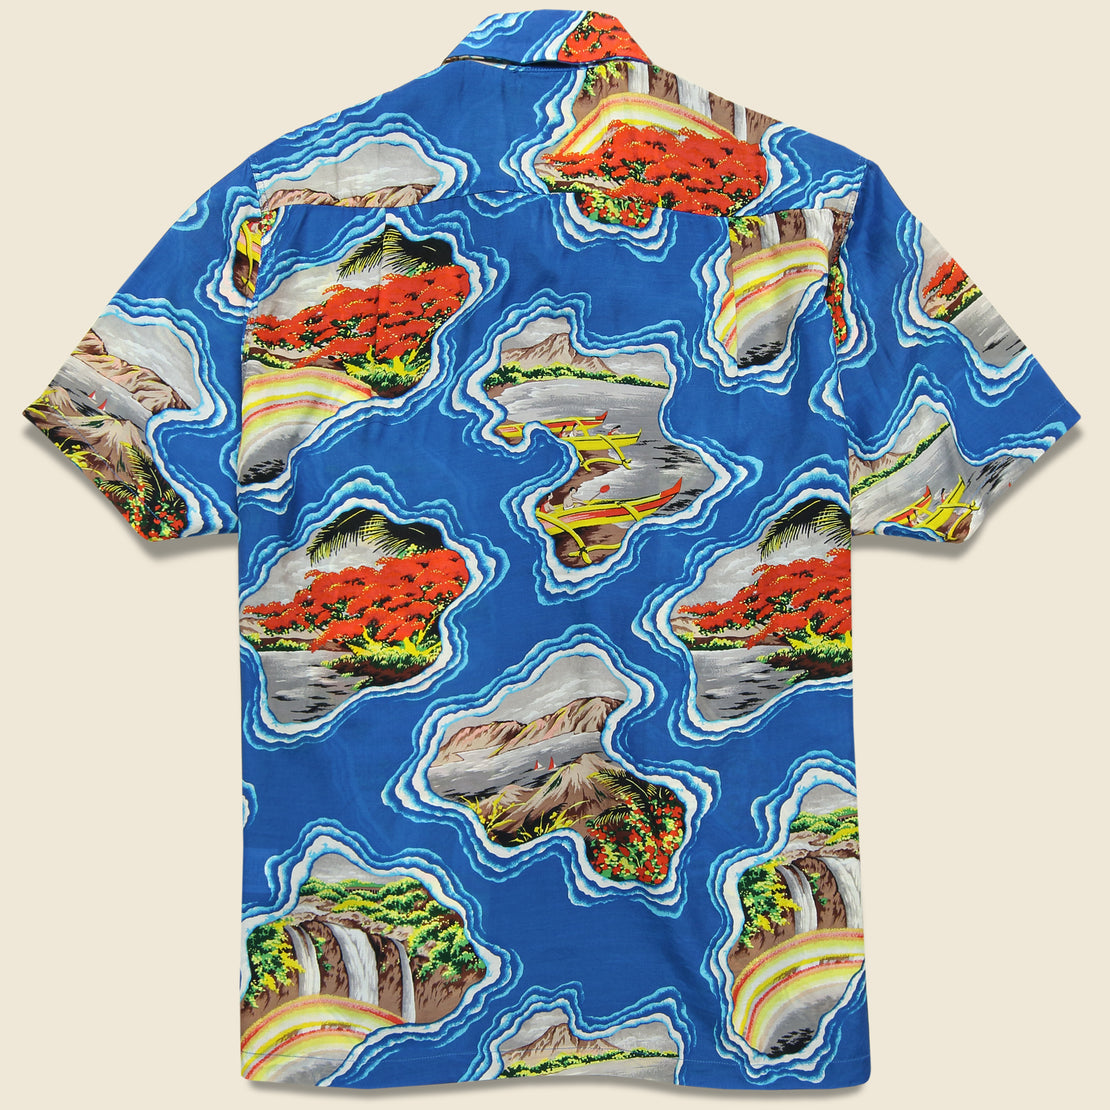 Pacific-Atlantic Aloha Shirt - Blue